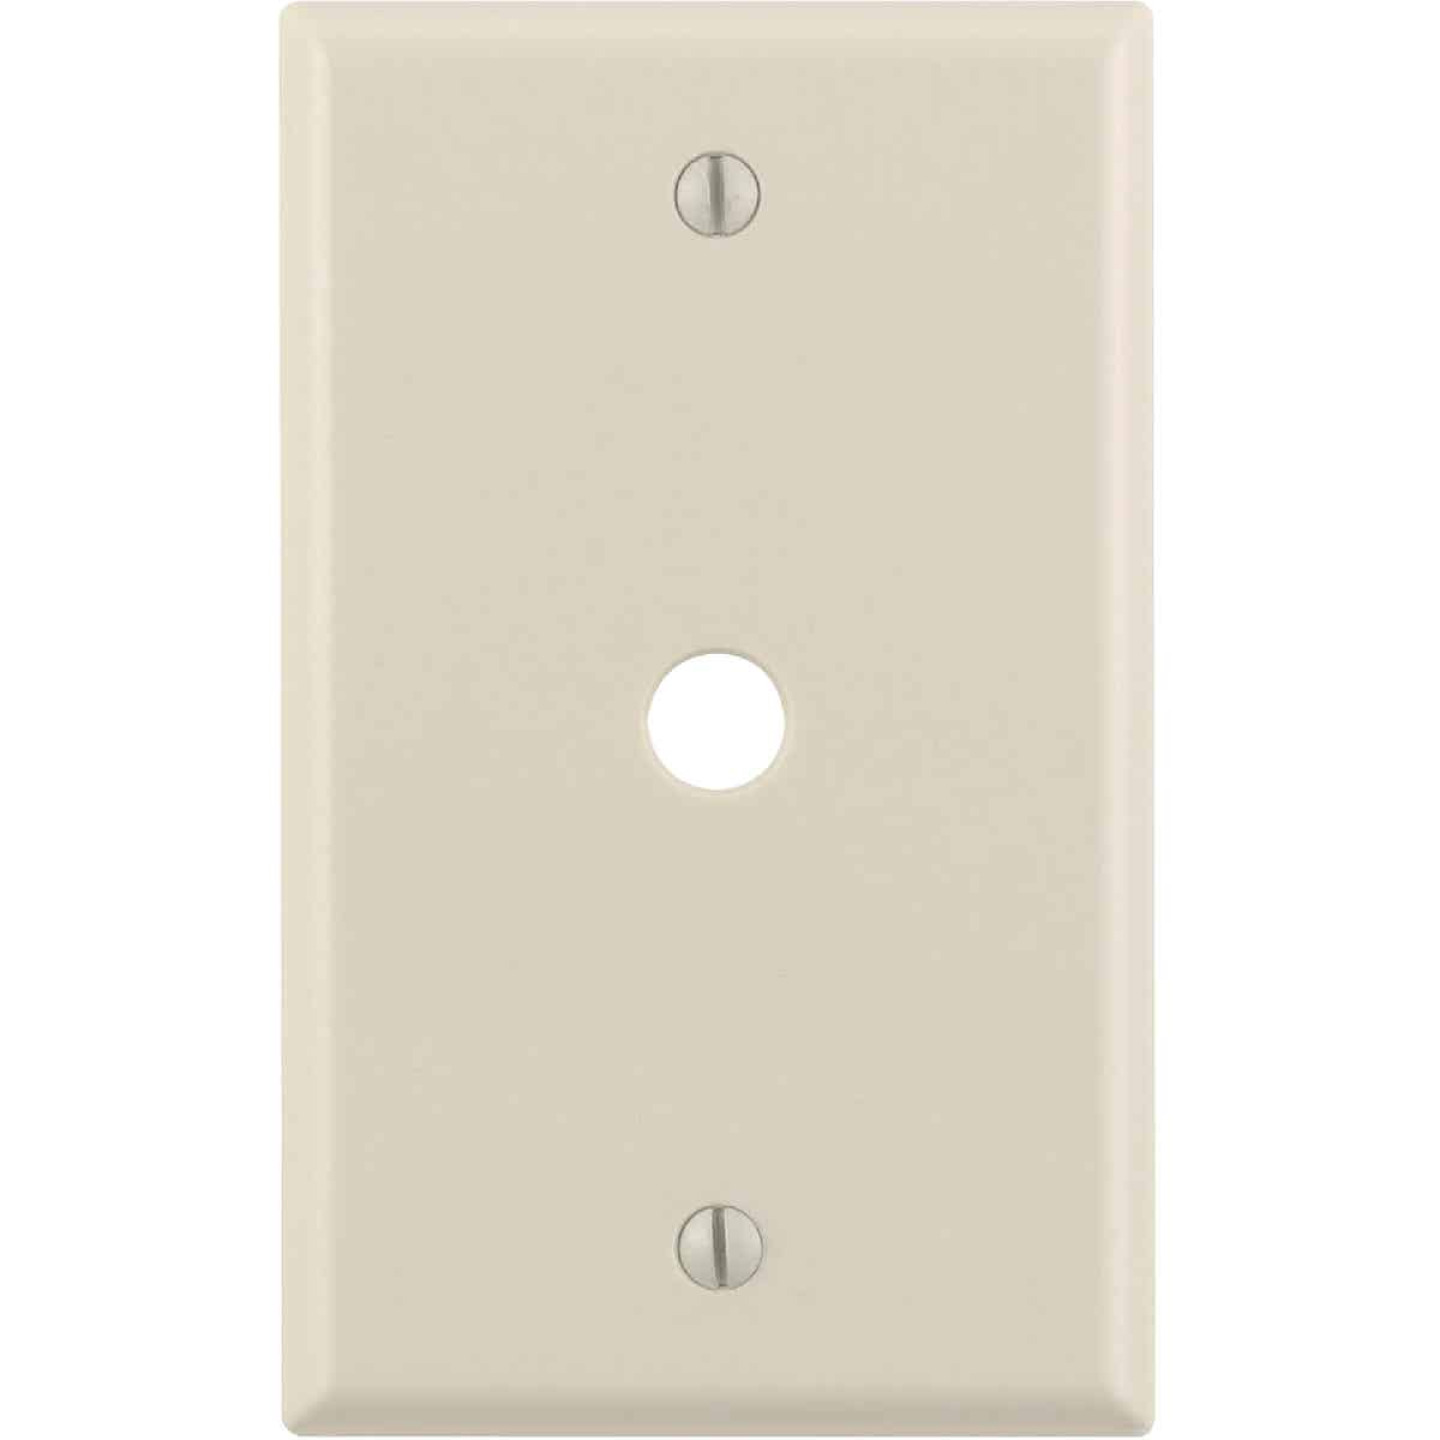 Leviton 1-Gang Plastic Light Almond Telephone/Cable Wall Plate with 0.312 In. Hole Image 1